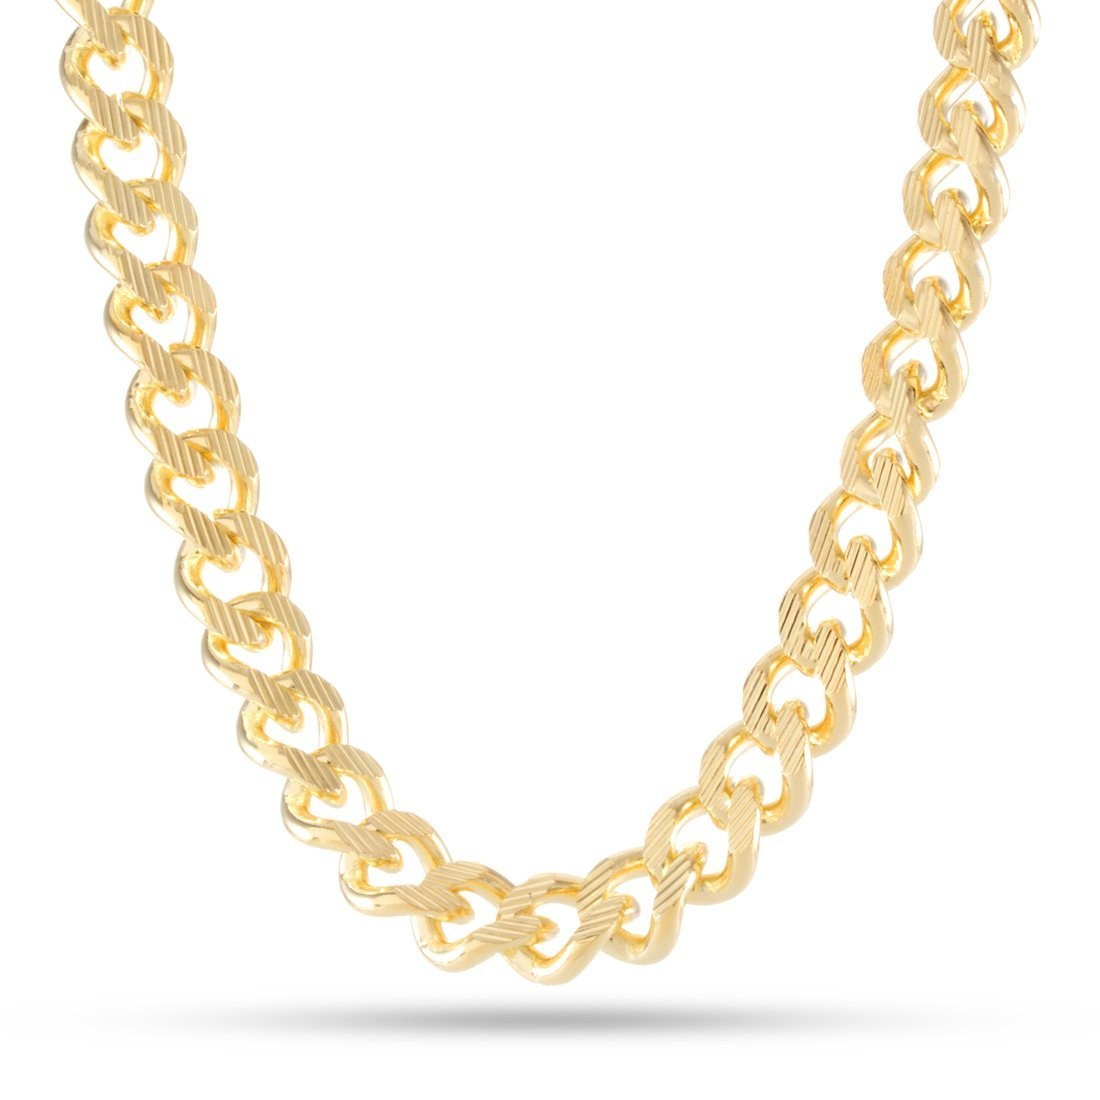 Chains - 10mm, 14K Gold Stainless Steel Mooncut Curb Chain -   jetcube